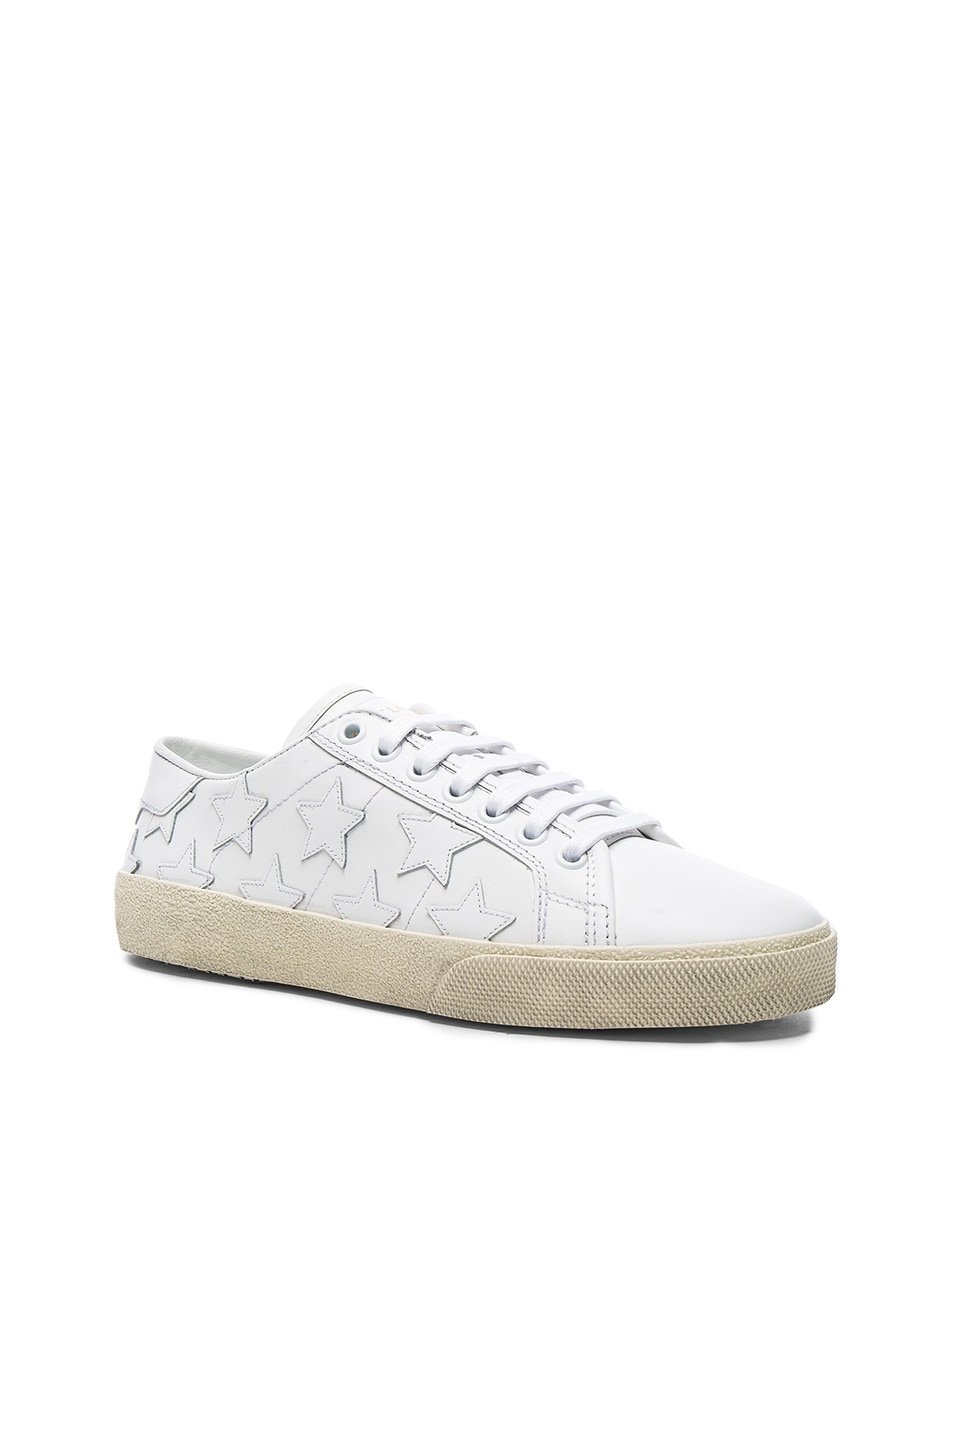 Image 2 of Saint Laurent Leather Court Classic Star Sneakers in Off White